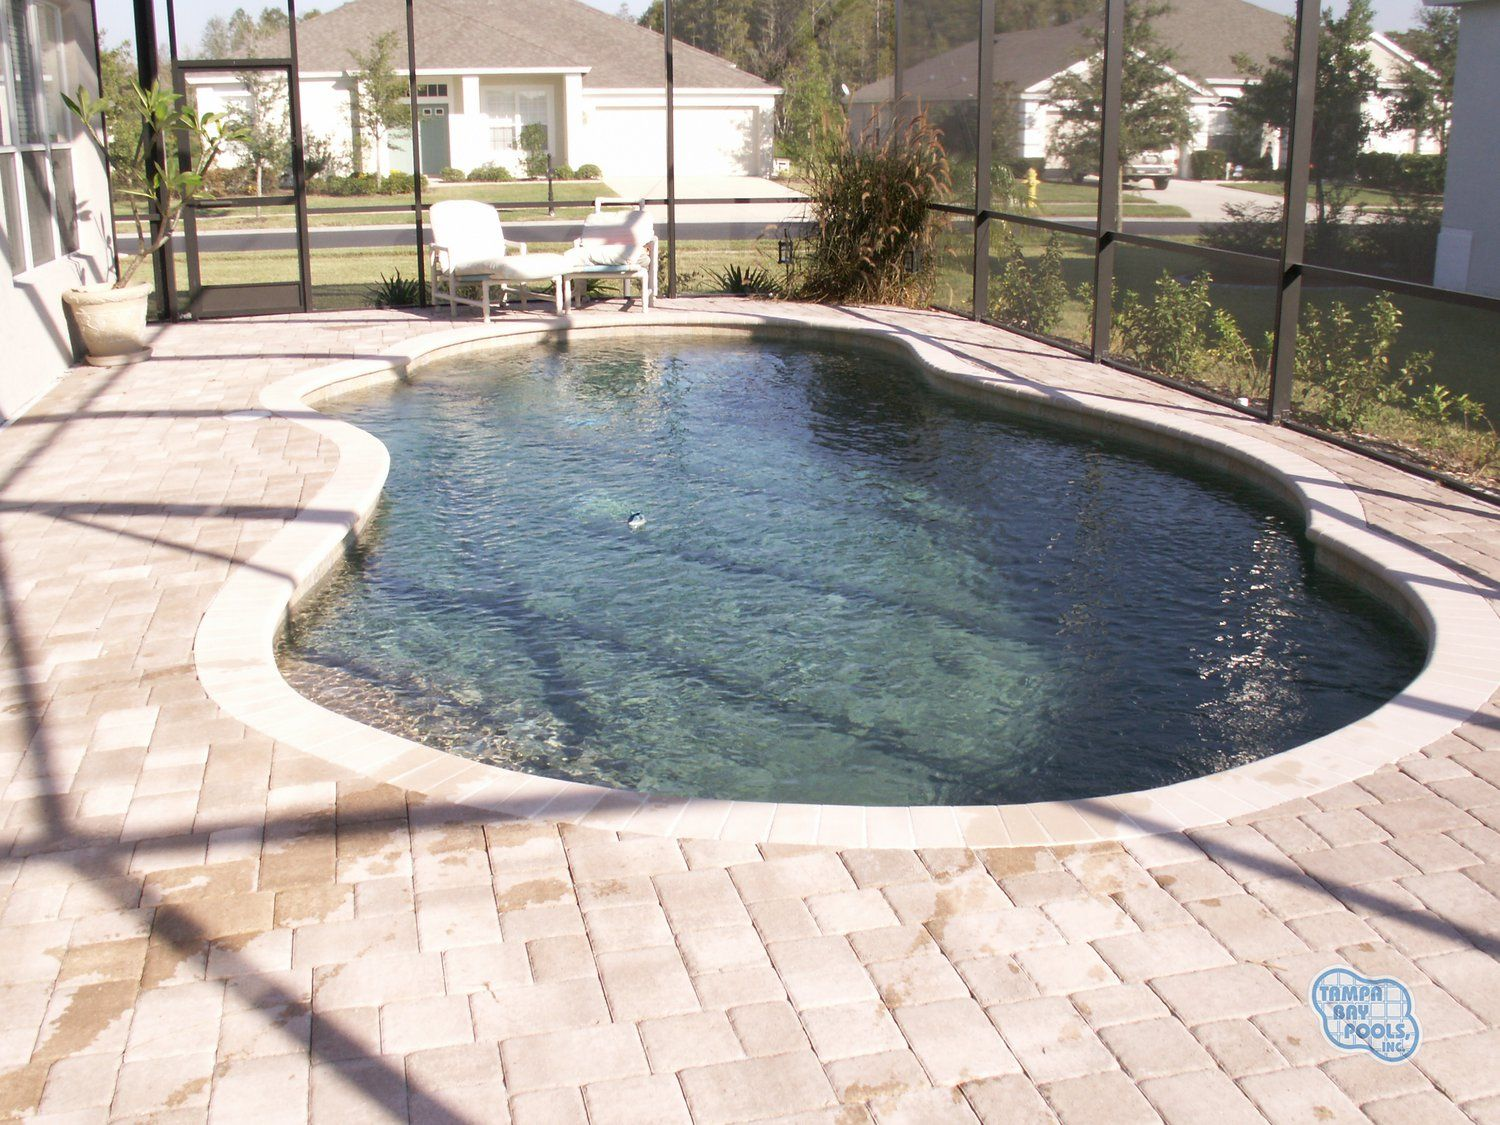 Residential Pool By Tampa Bay Pools 044